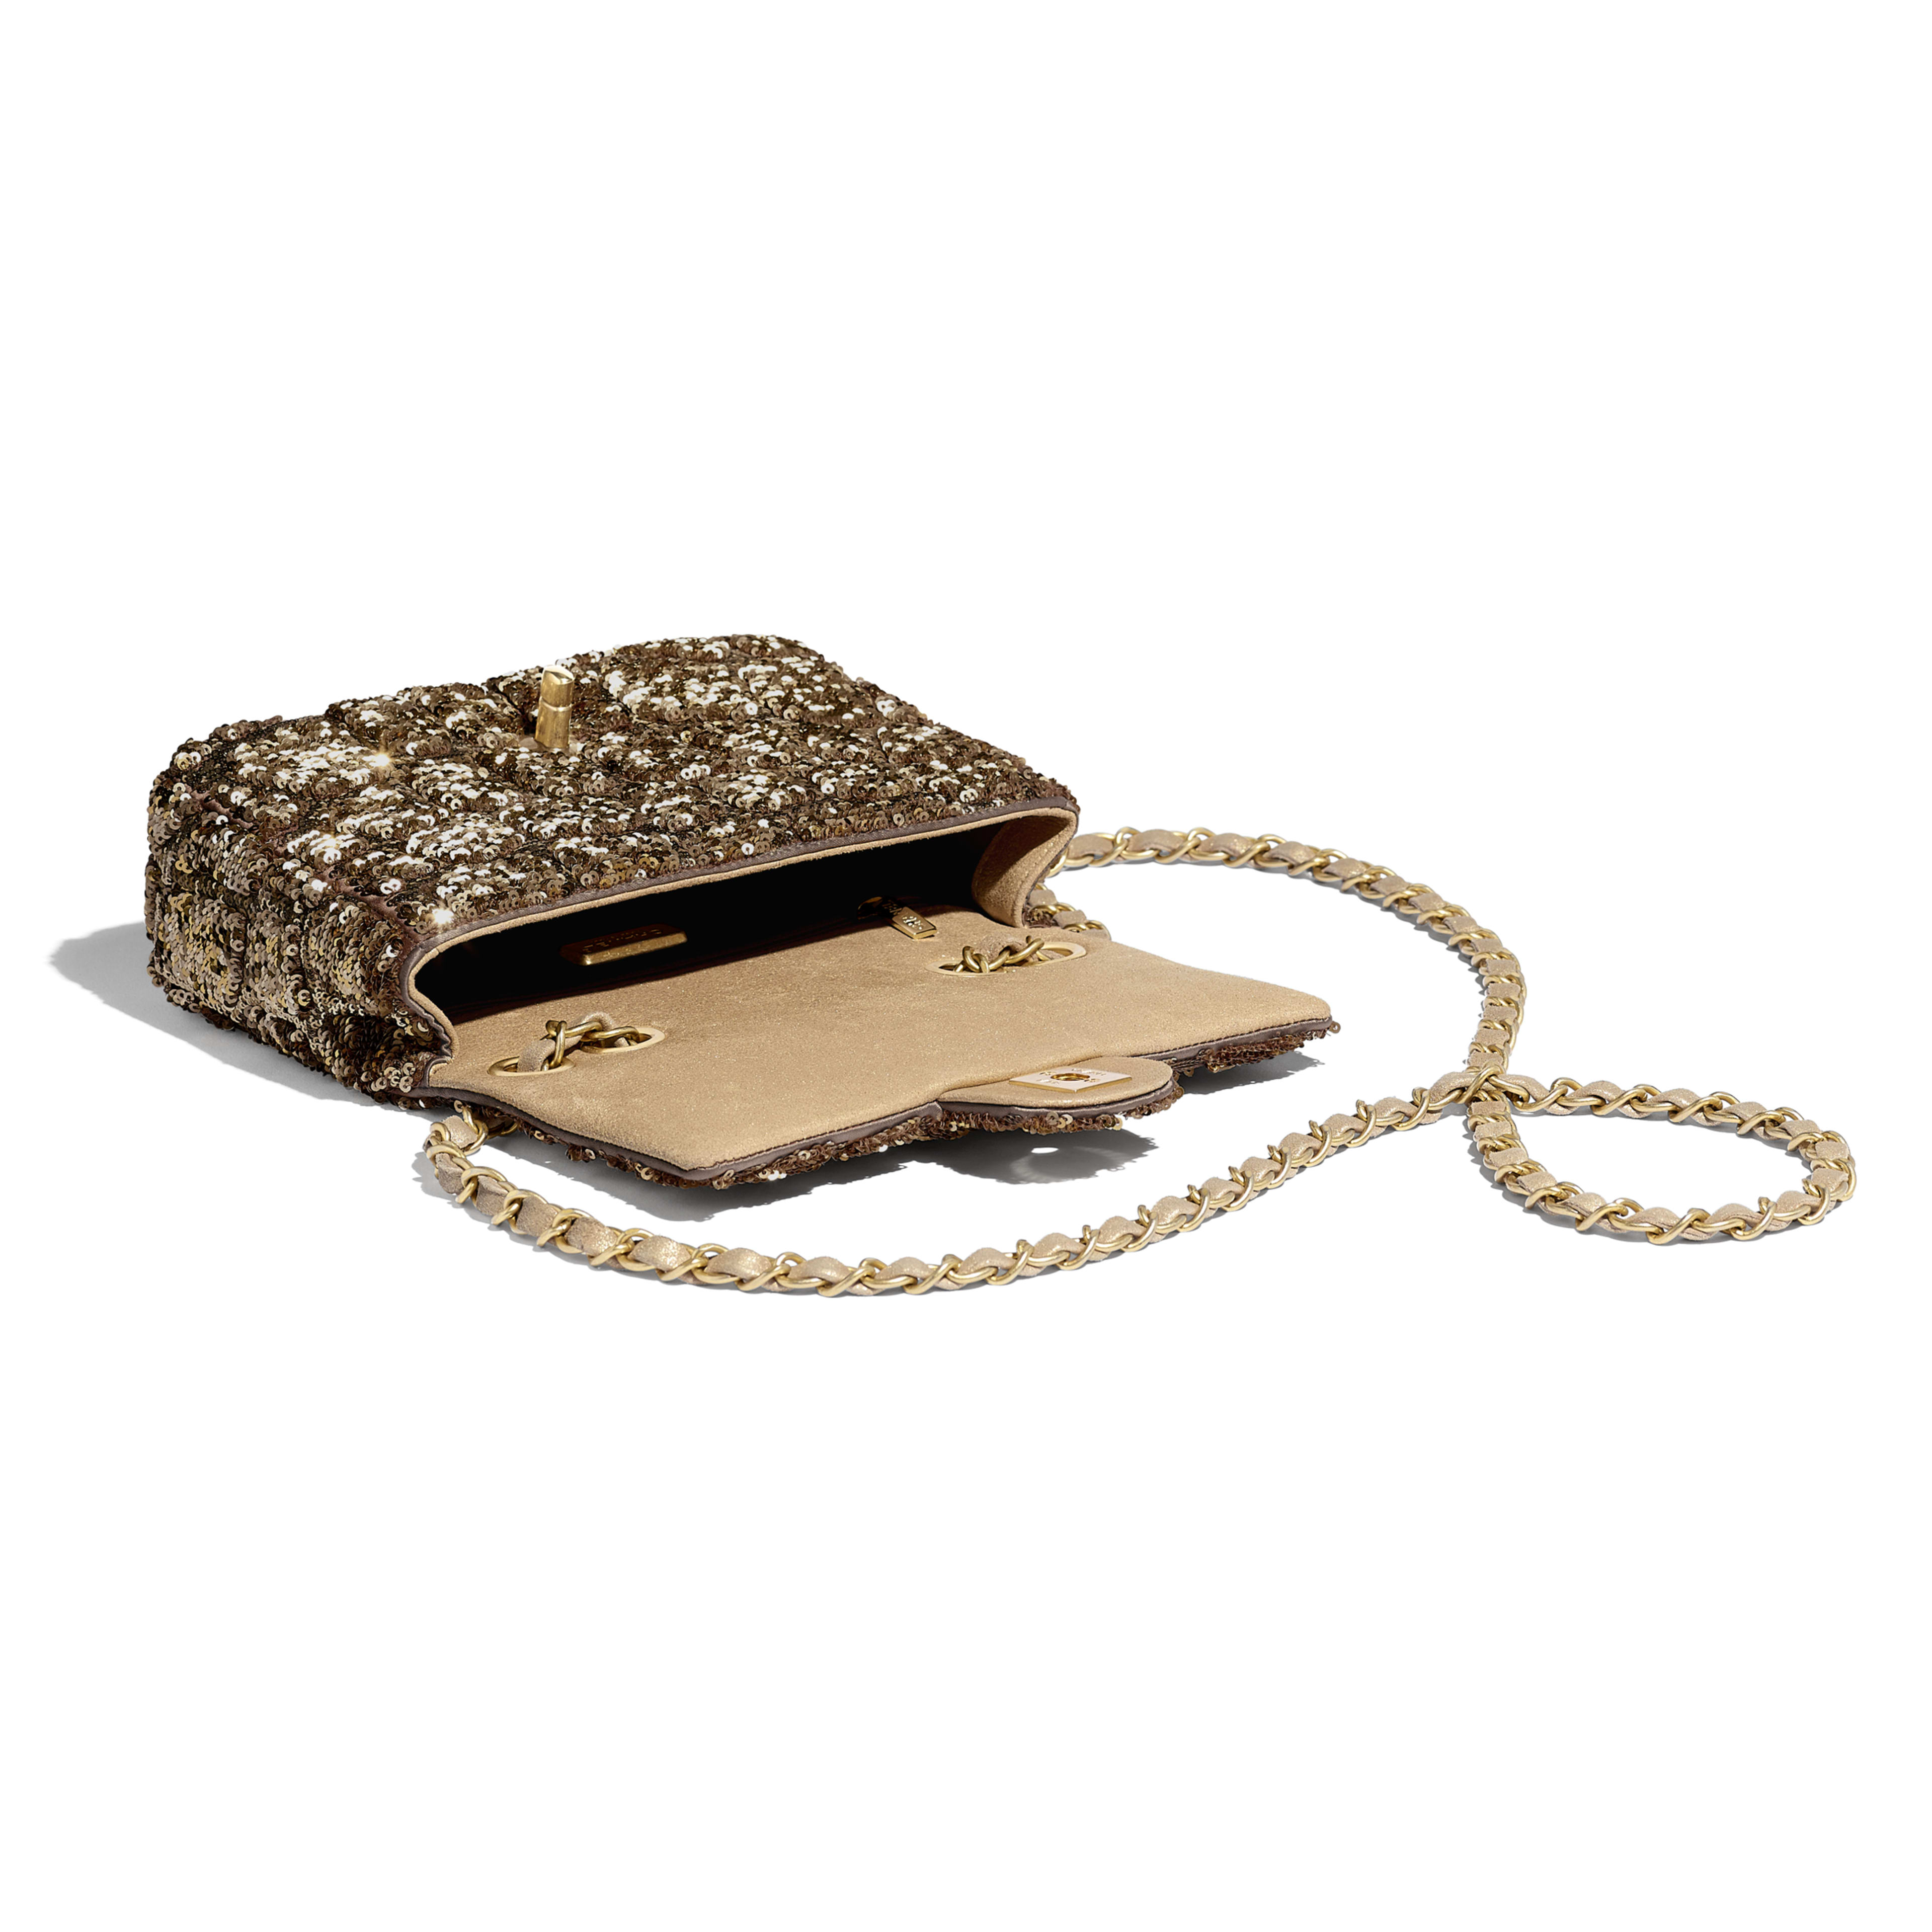 Small Flap Bag - Gold & Copper - Sequins & Gold-Tone Metal - Other view - see full sized version